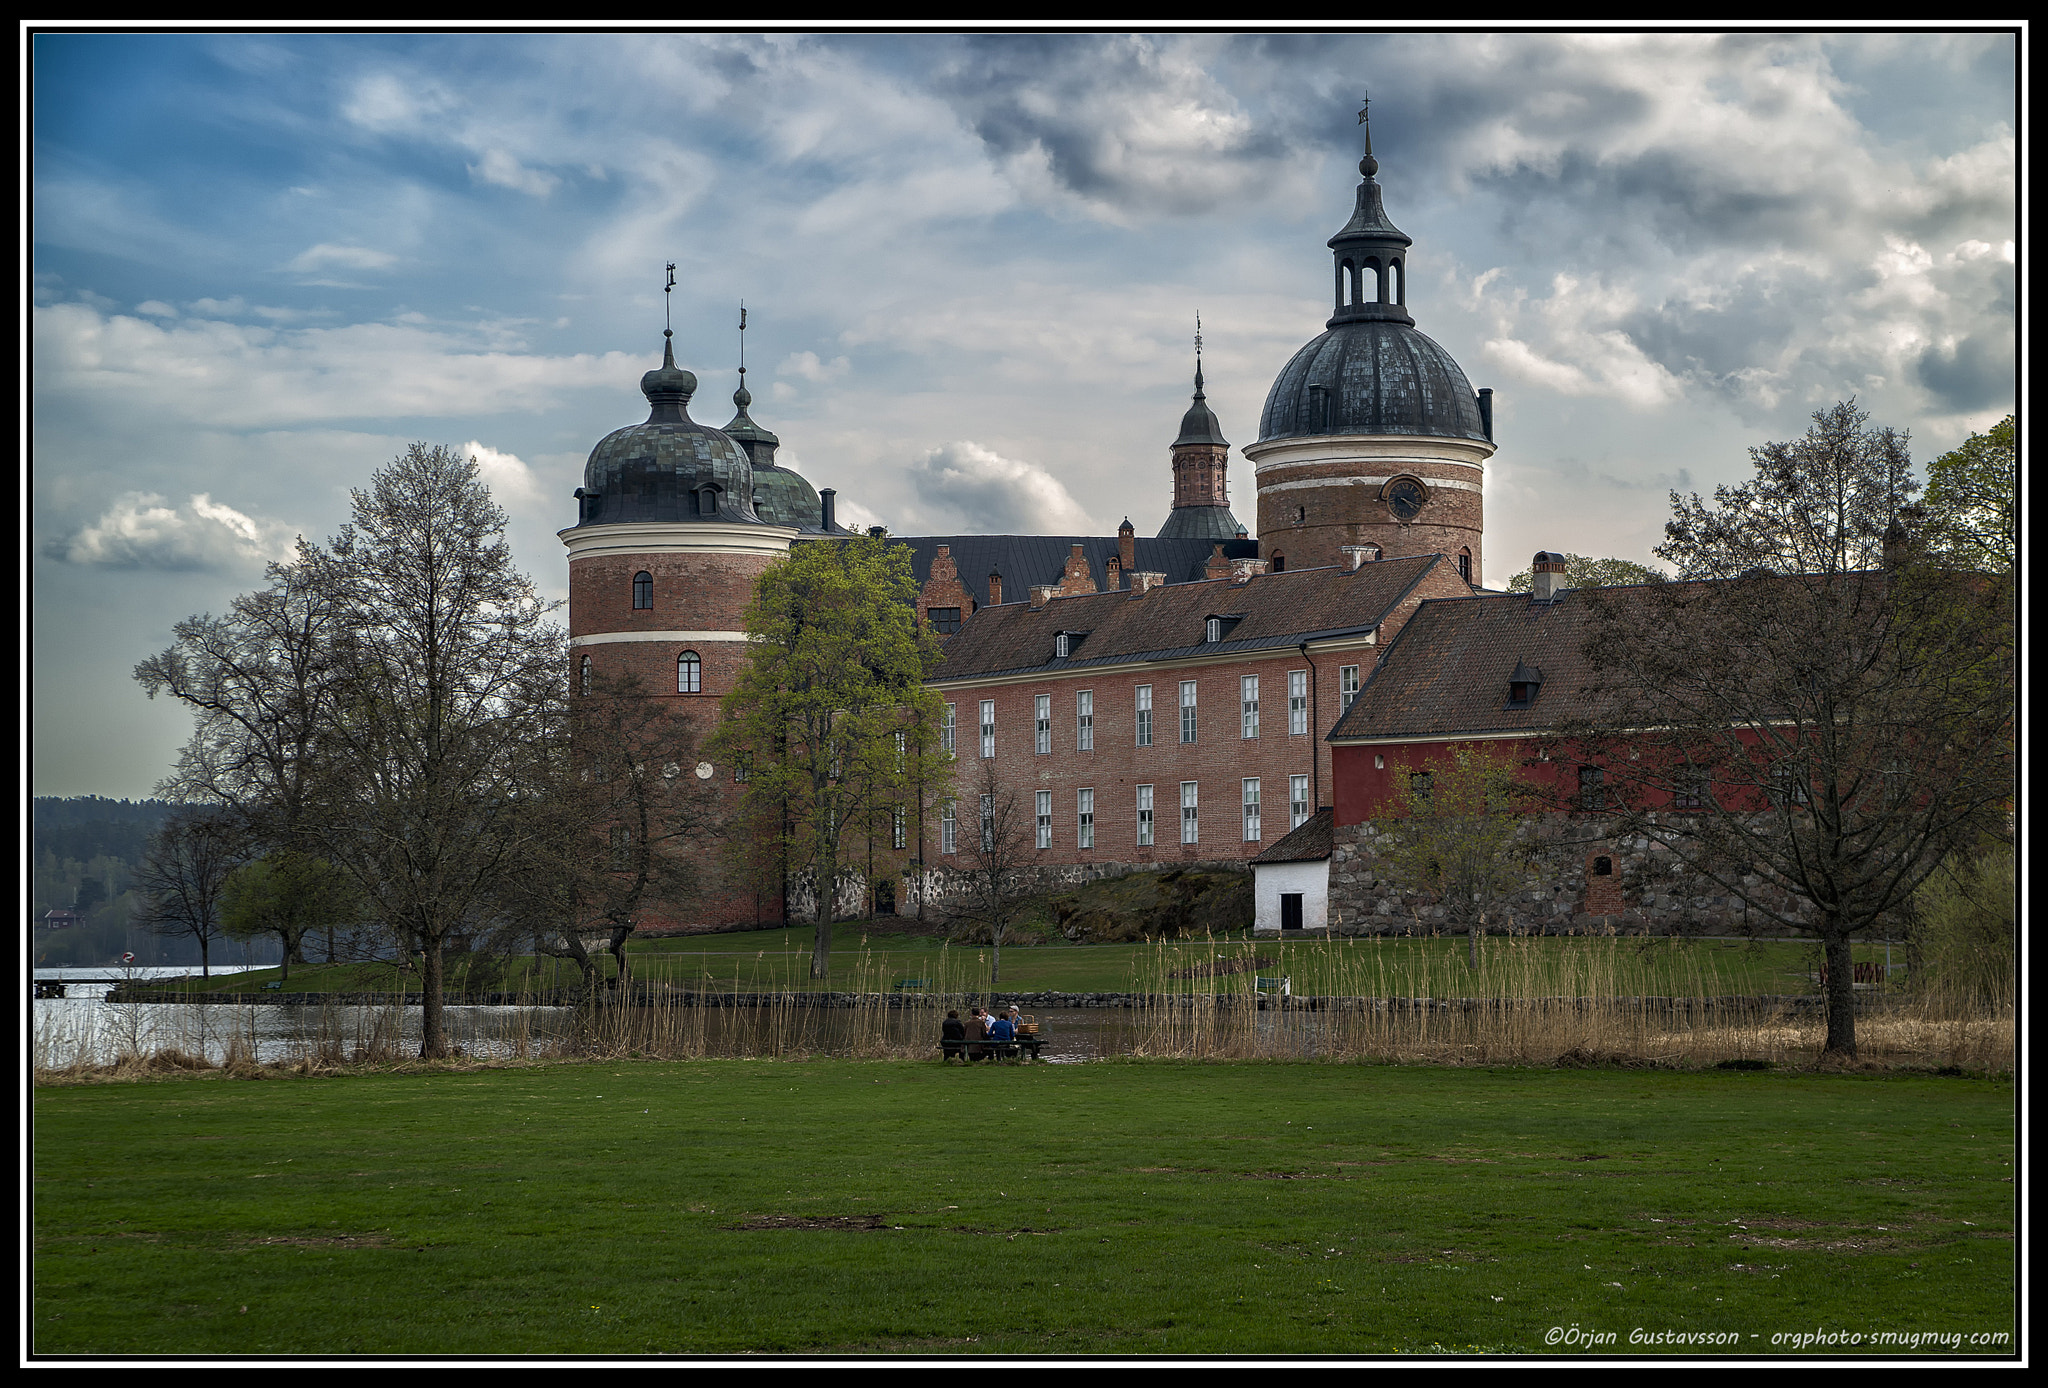 Photograph Gripsholm Castle by Örjan Gustavsson on 500px